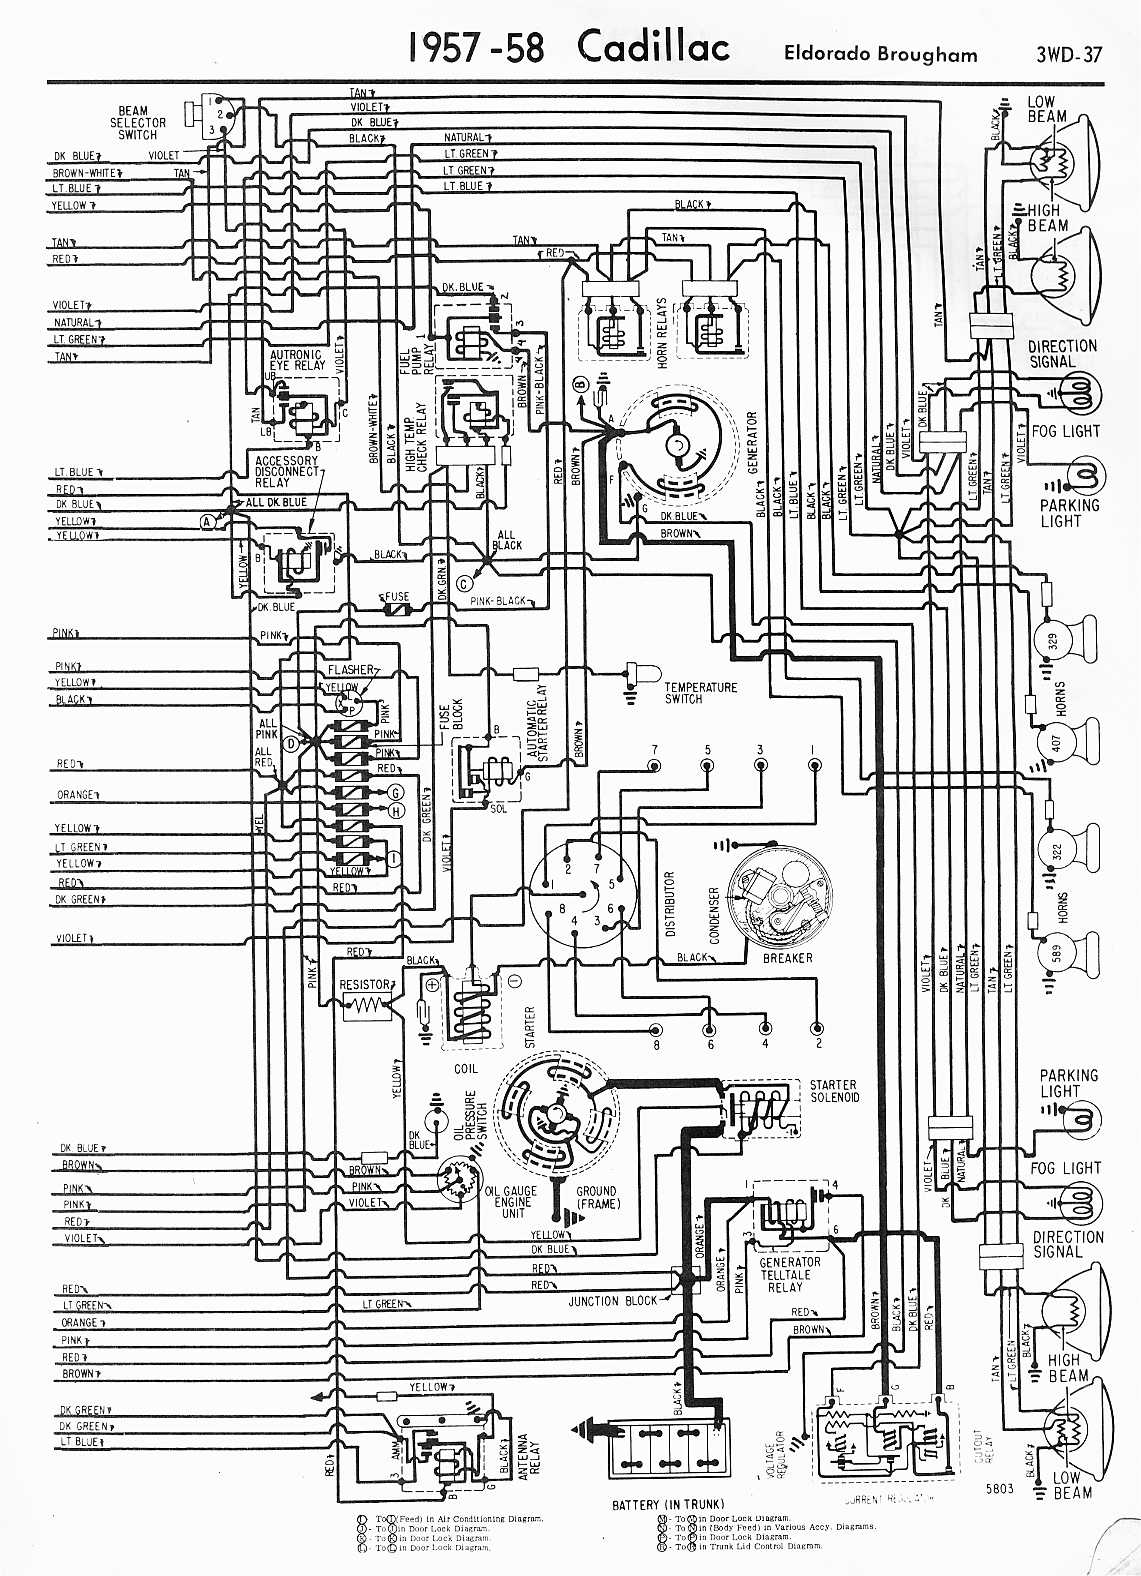 1955 Cadillac Series 62 Wiring Diagram Electrical Schematics 1947 Ford Coupe Diagrams 1957 1965 1949